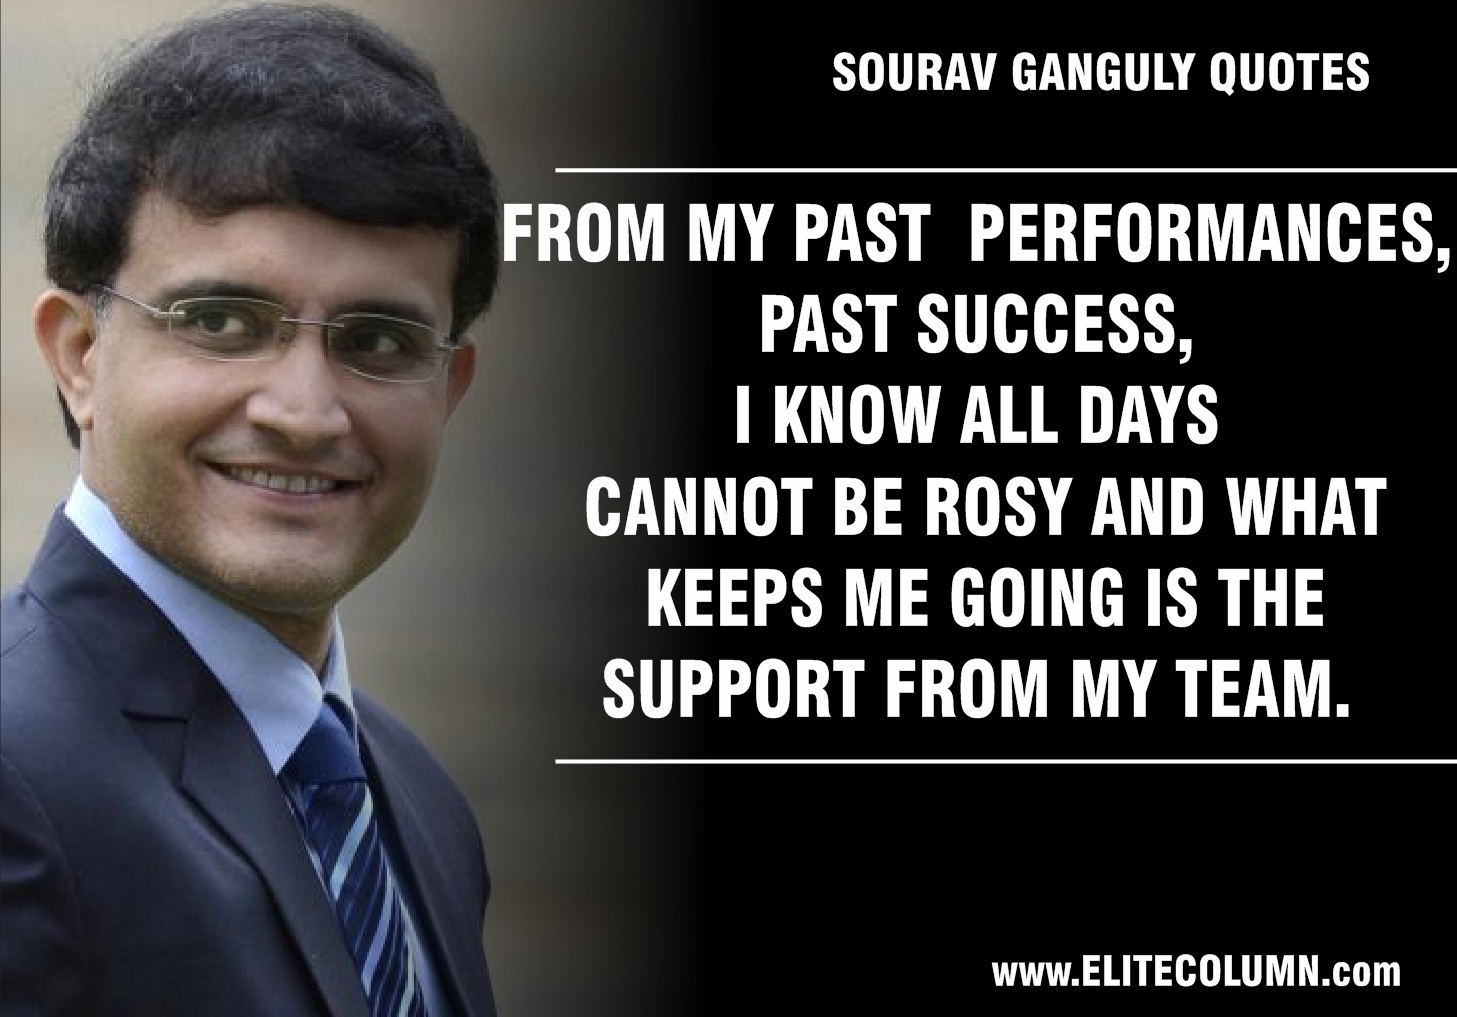 Sourav Ganguly Quotes (1)